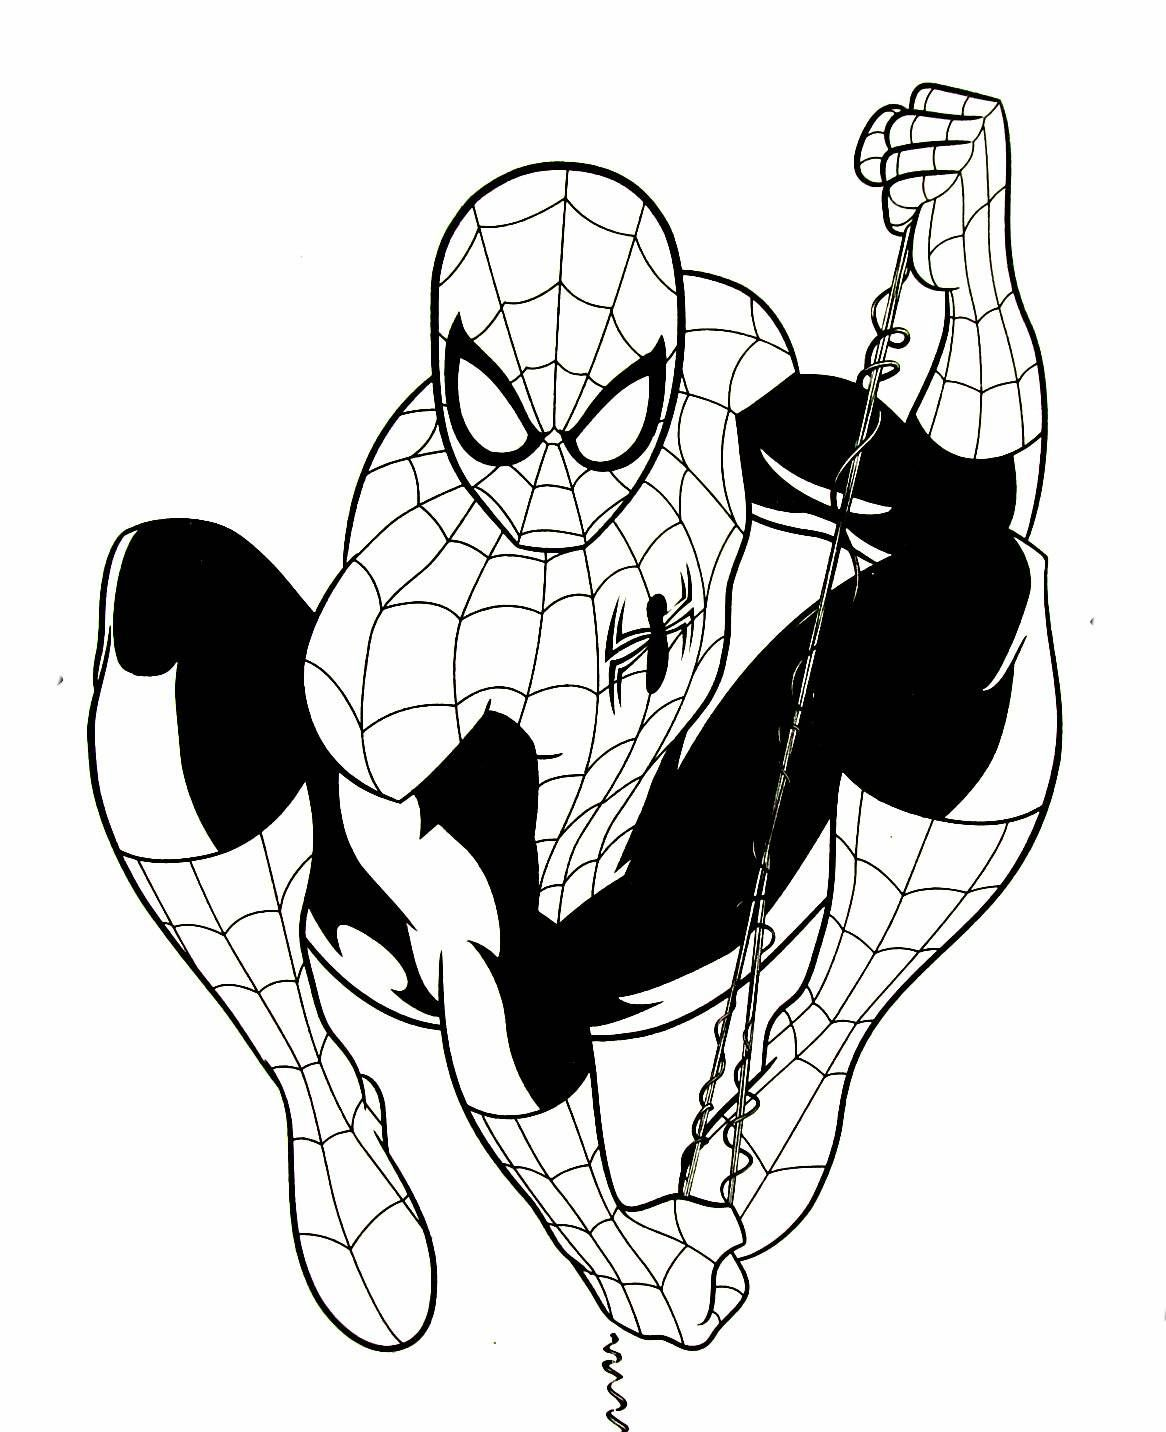 Spiderman Coloring Book Page Spiderman Coloring Coloring Books Cartoon Coloring Pages